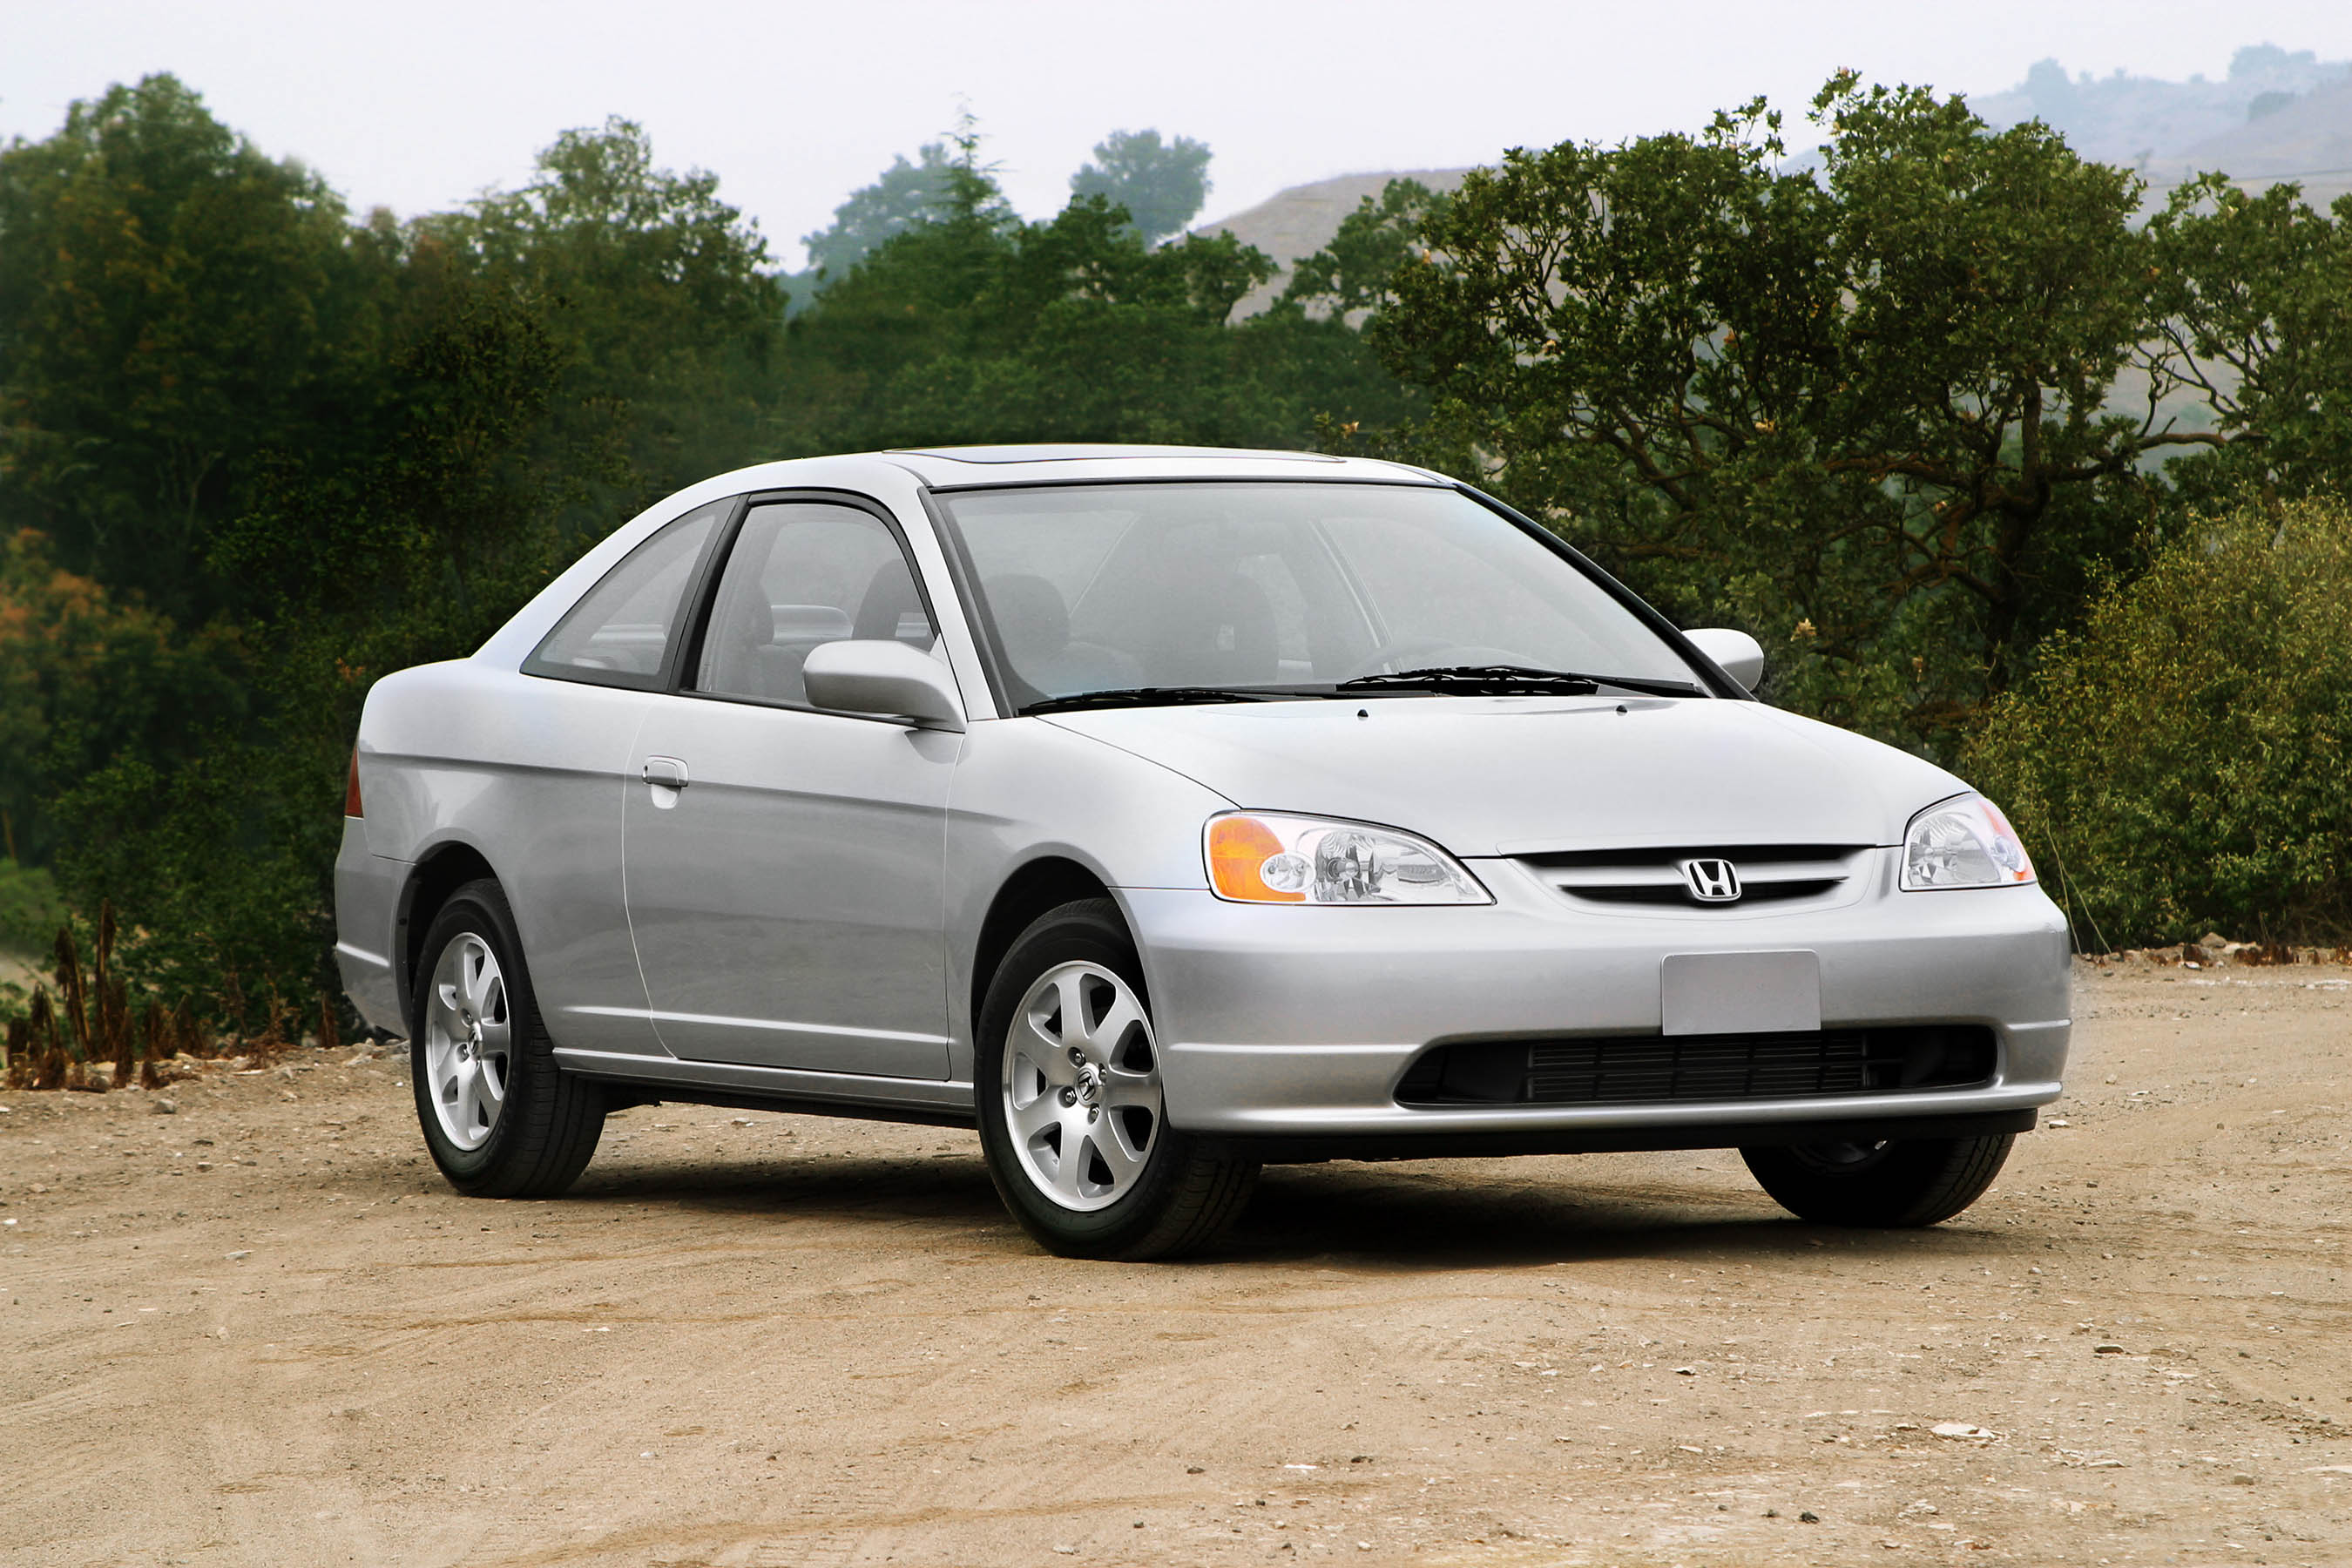 2003 Honda Civic Coupe thumbnail photo 73297